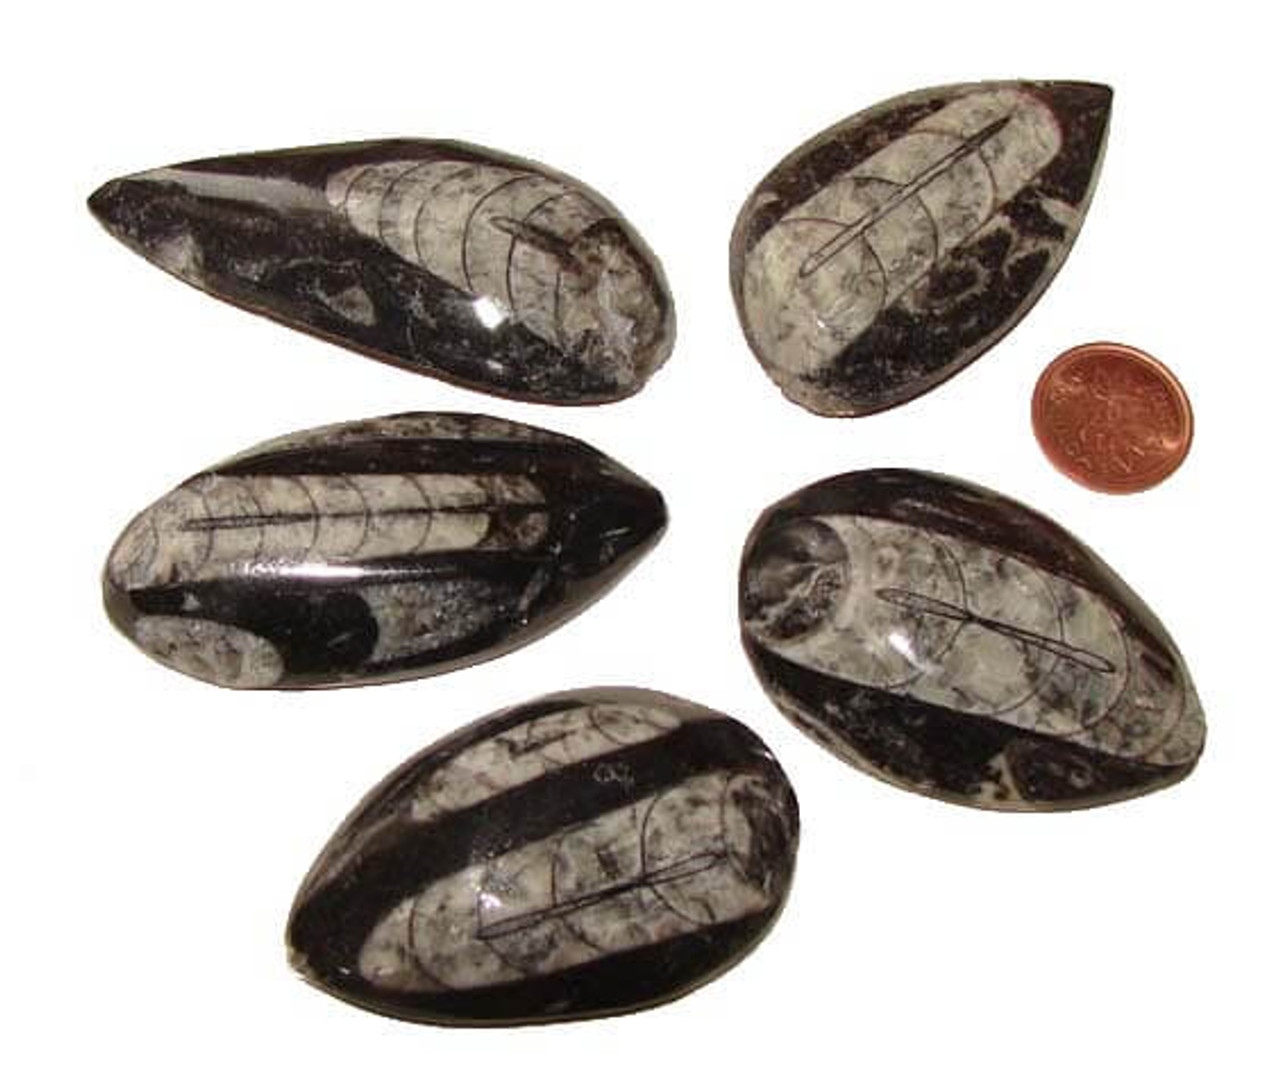 Orthoceras Polished Fossils, XXX Large, 30 to 34 grams, 2 to 3-1/2 inches